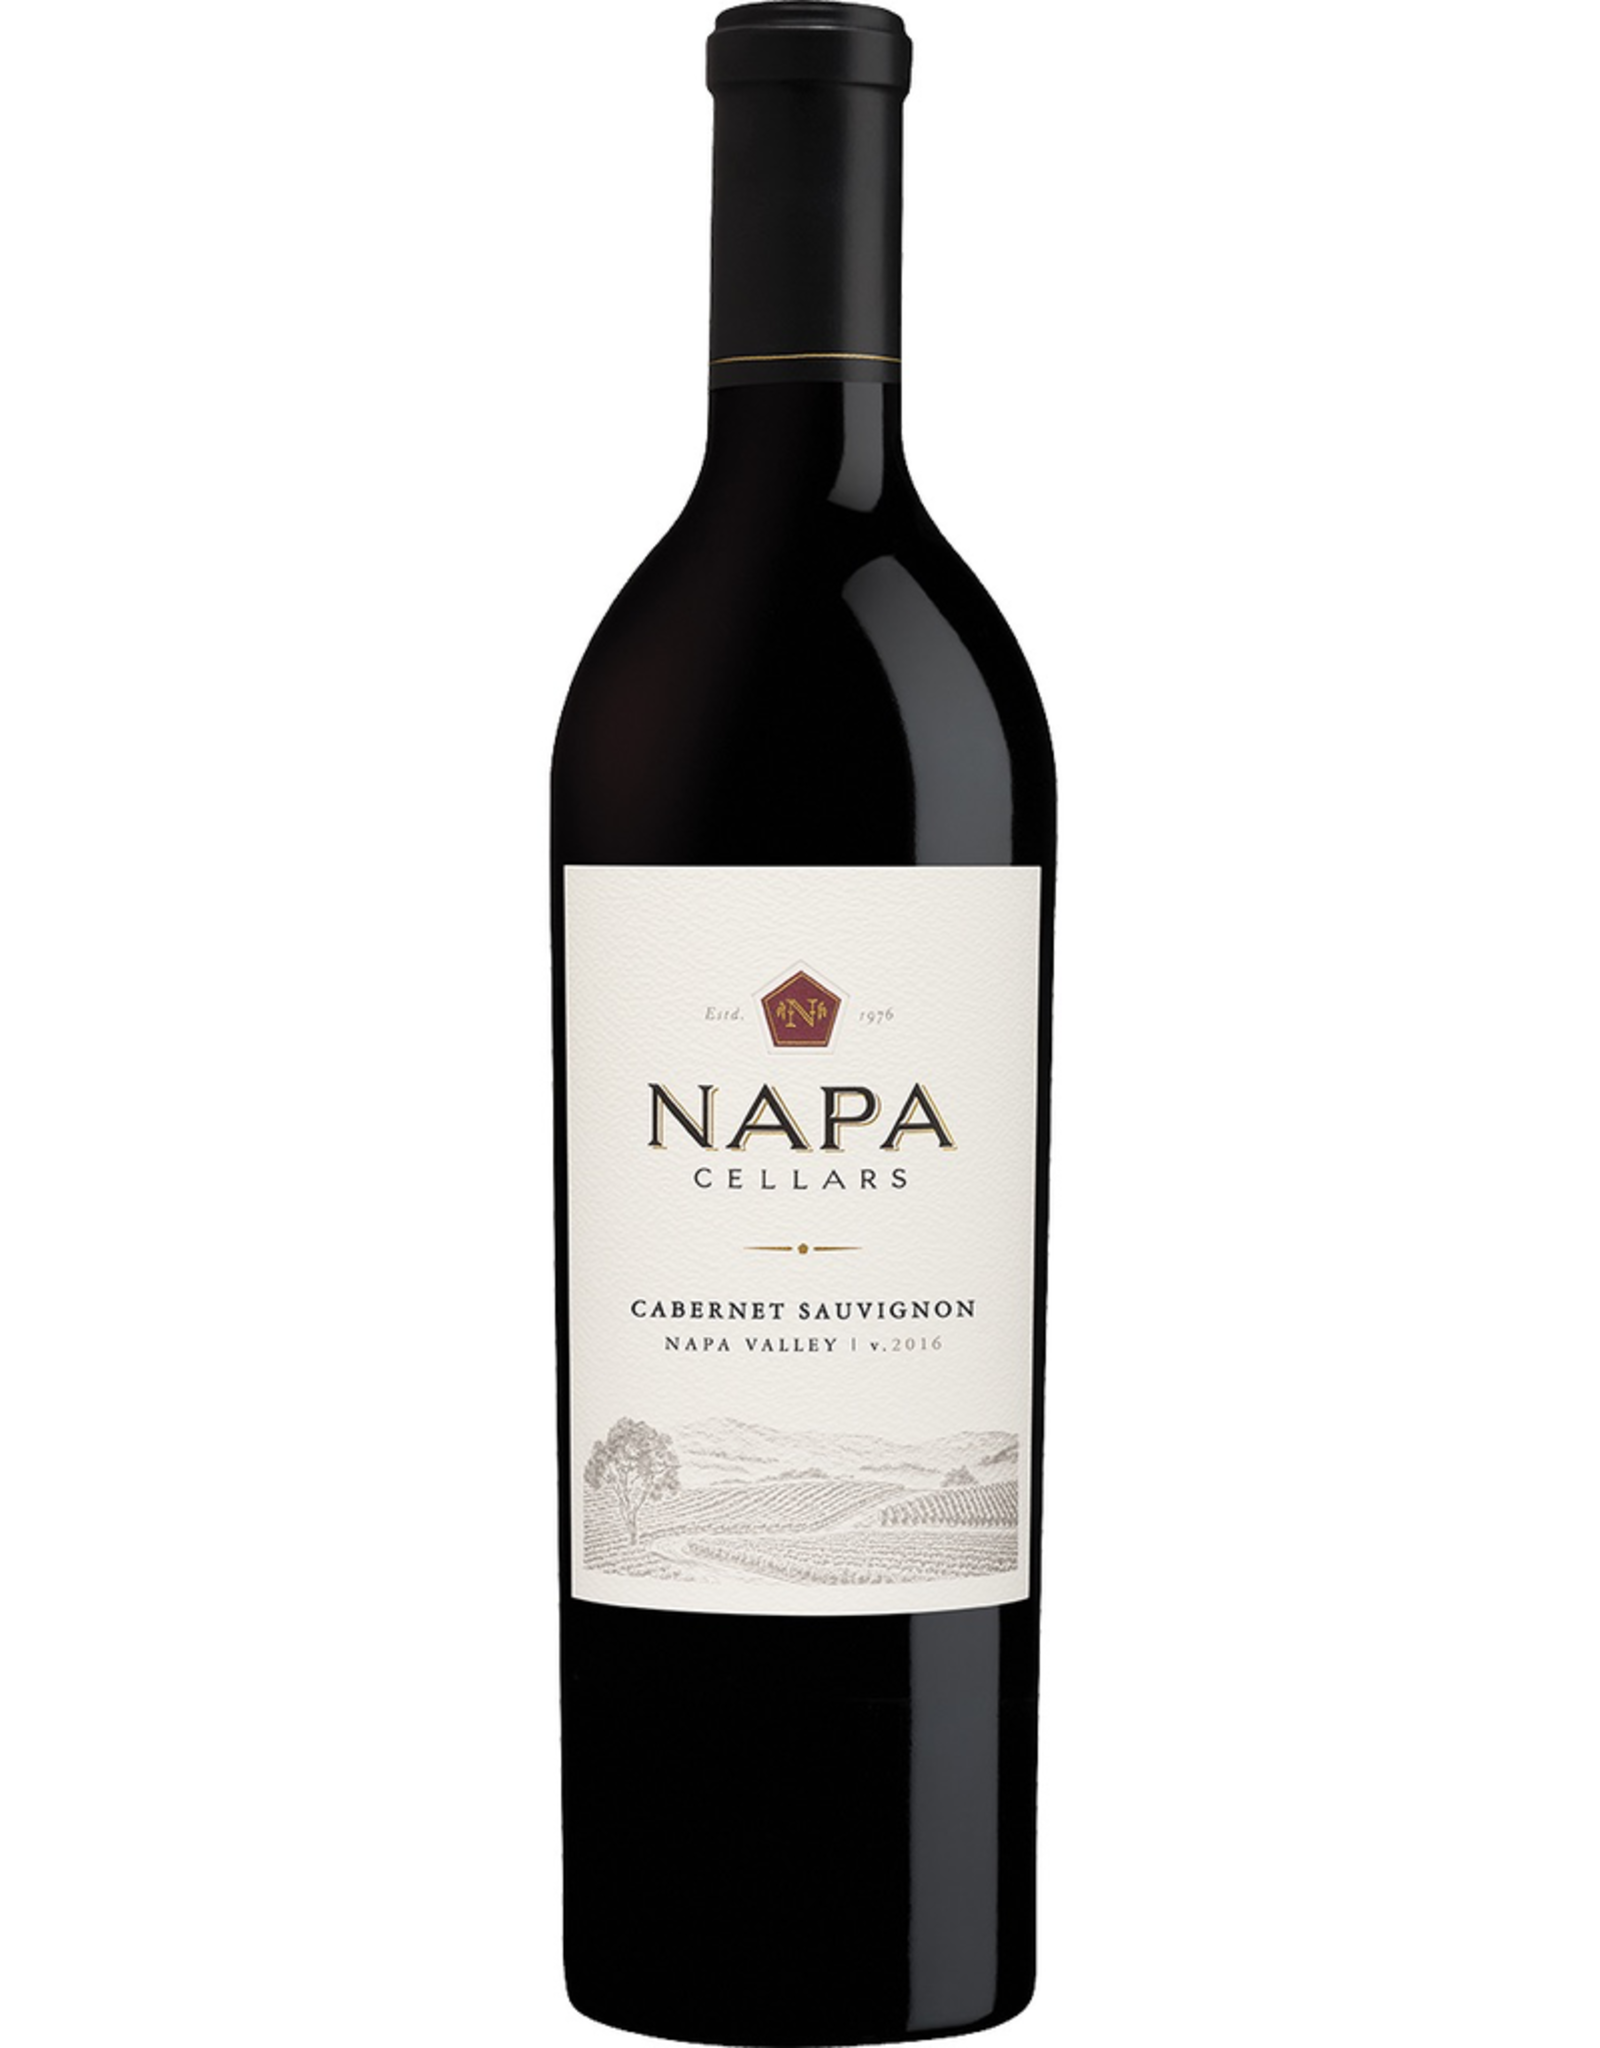 Red Wine 2016, Napa Cellars, Cabernet Sauvignon, Napa, Napa Valley, California, 14.2% Alc, WE91